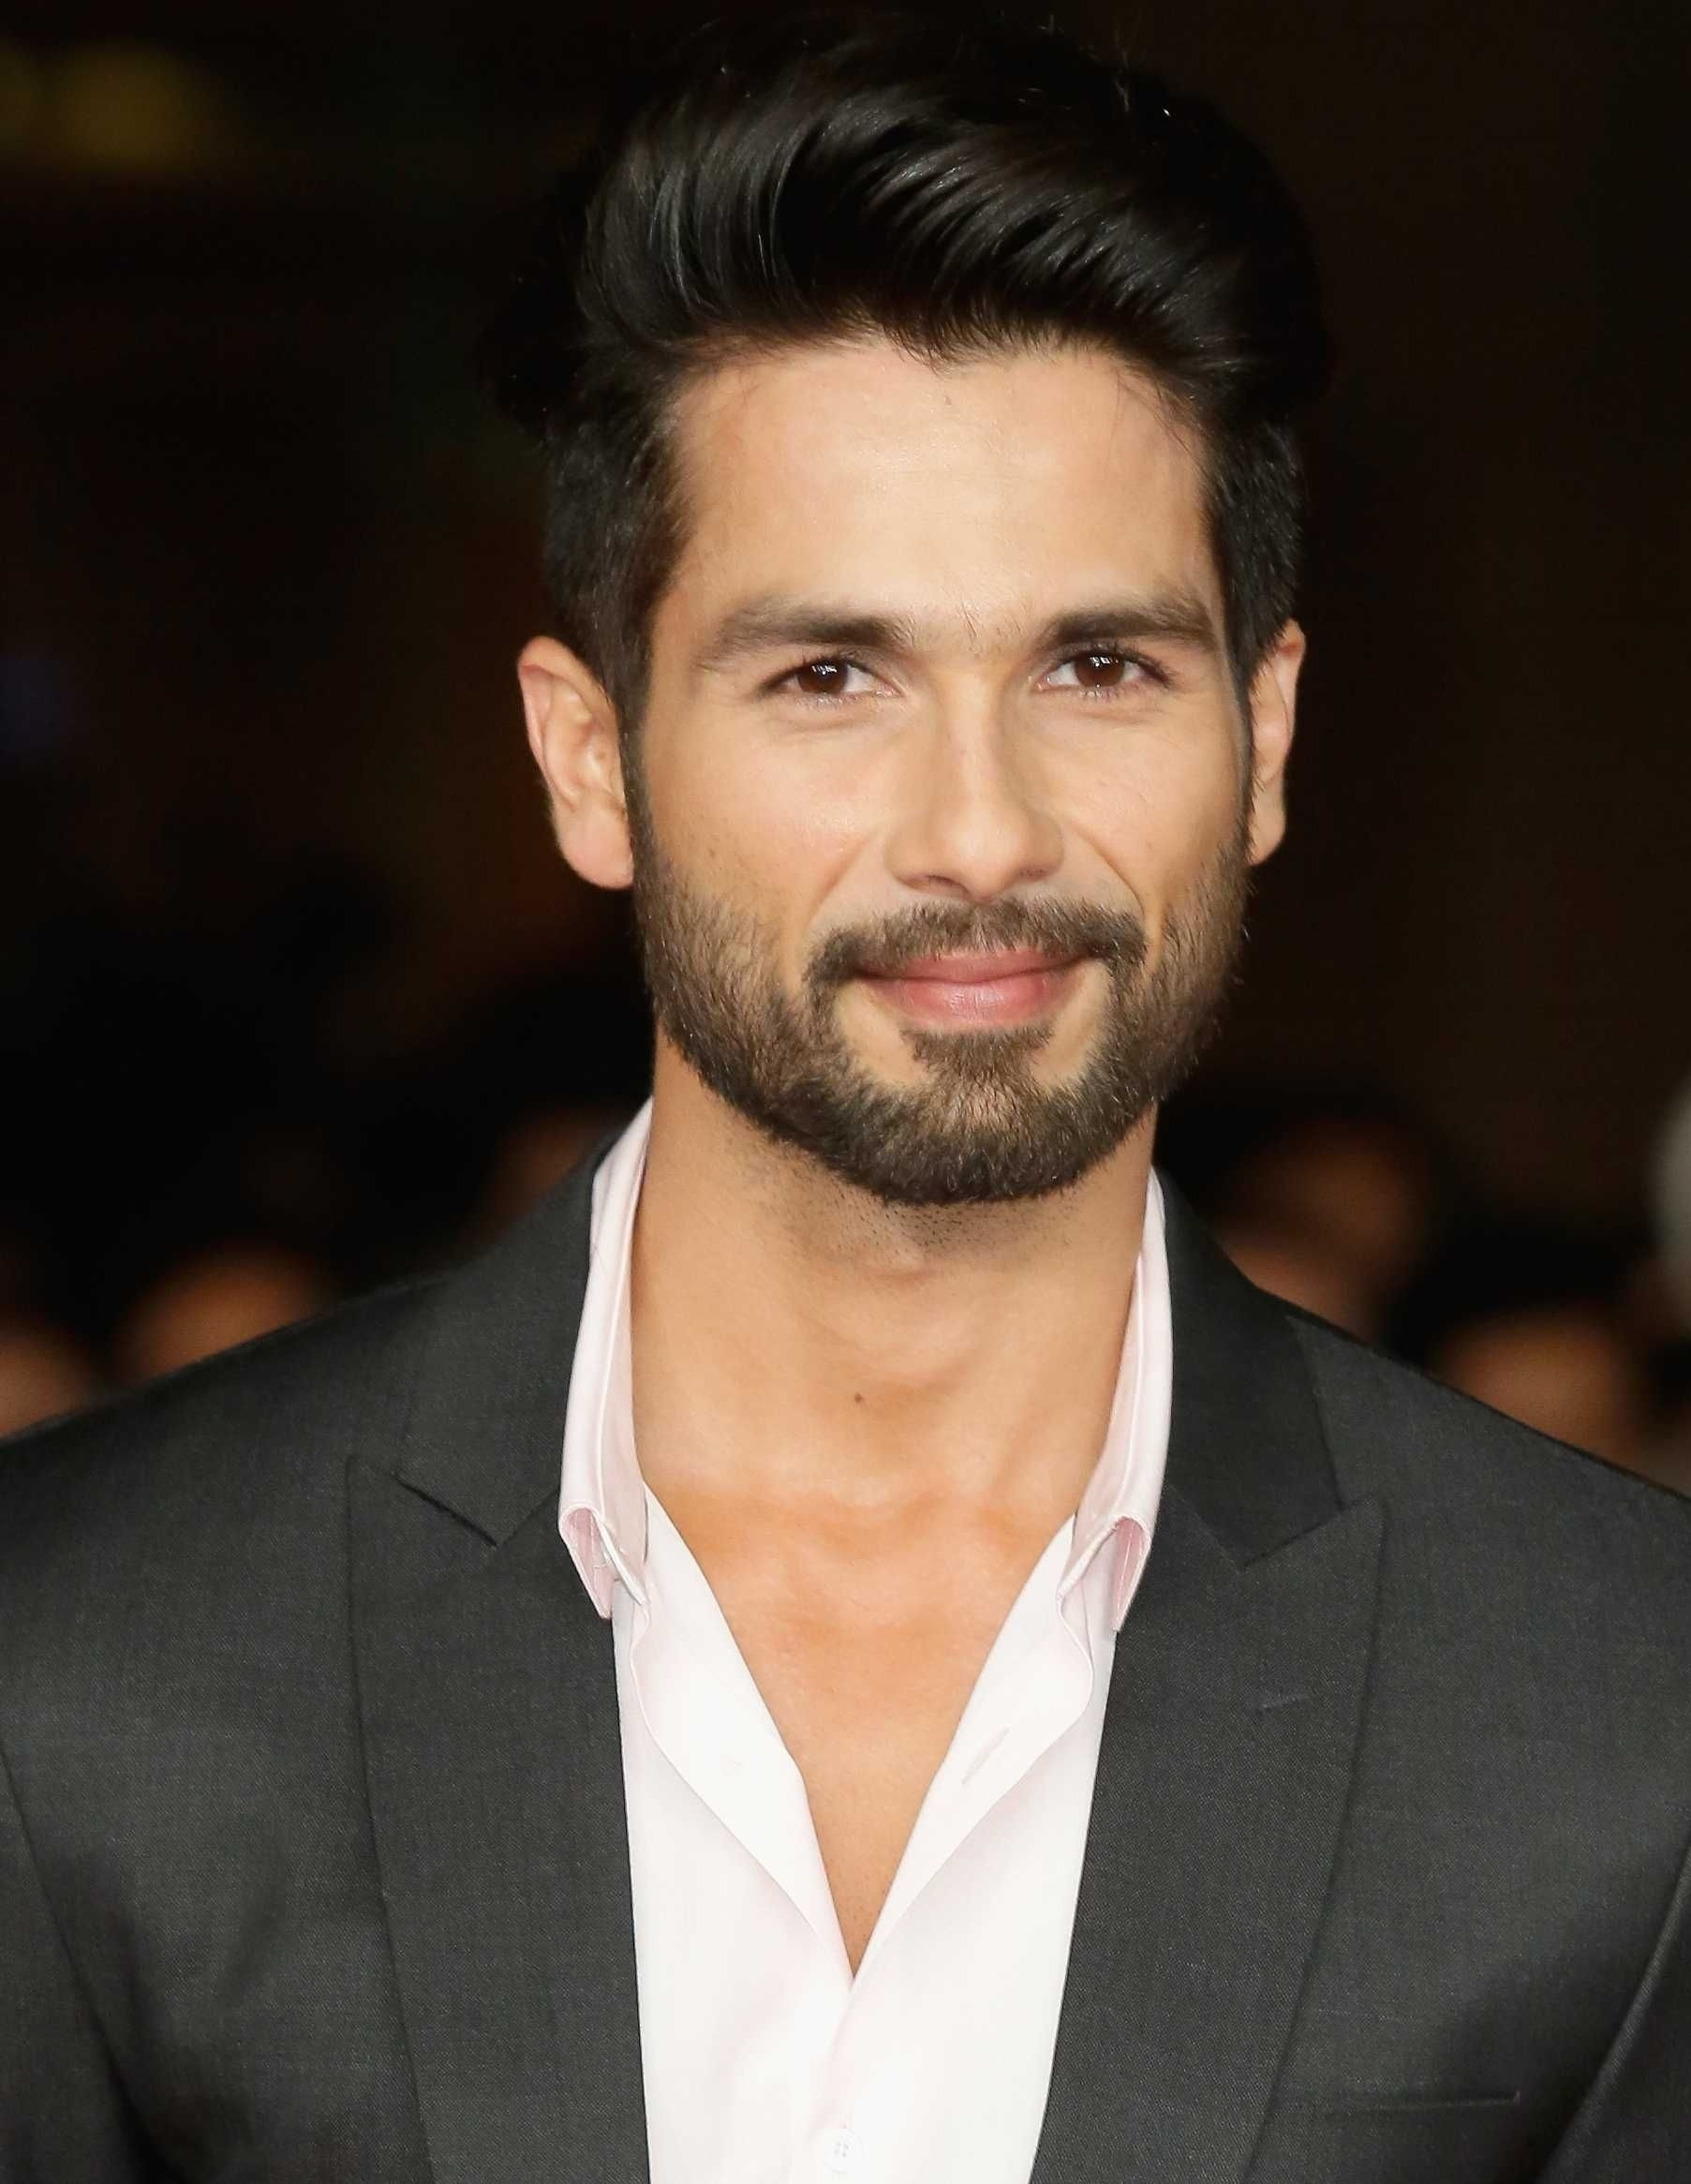 Indian Men Hairstyle For Round Face | Frisuren Modelle | Pinterest for Haircut For Round Face Indian Male